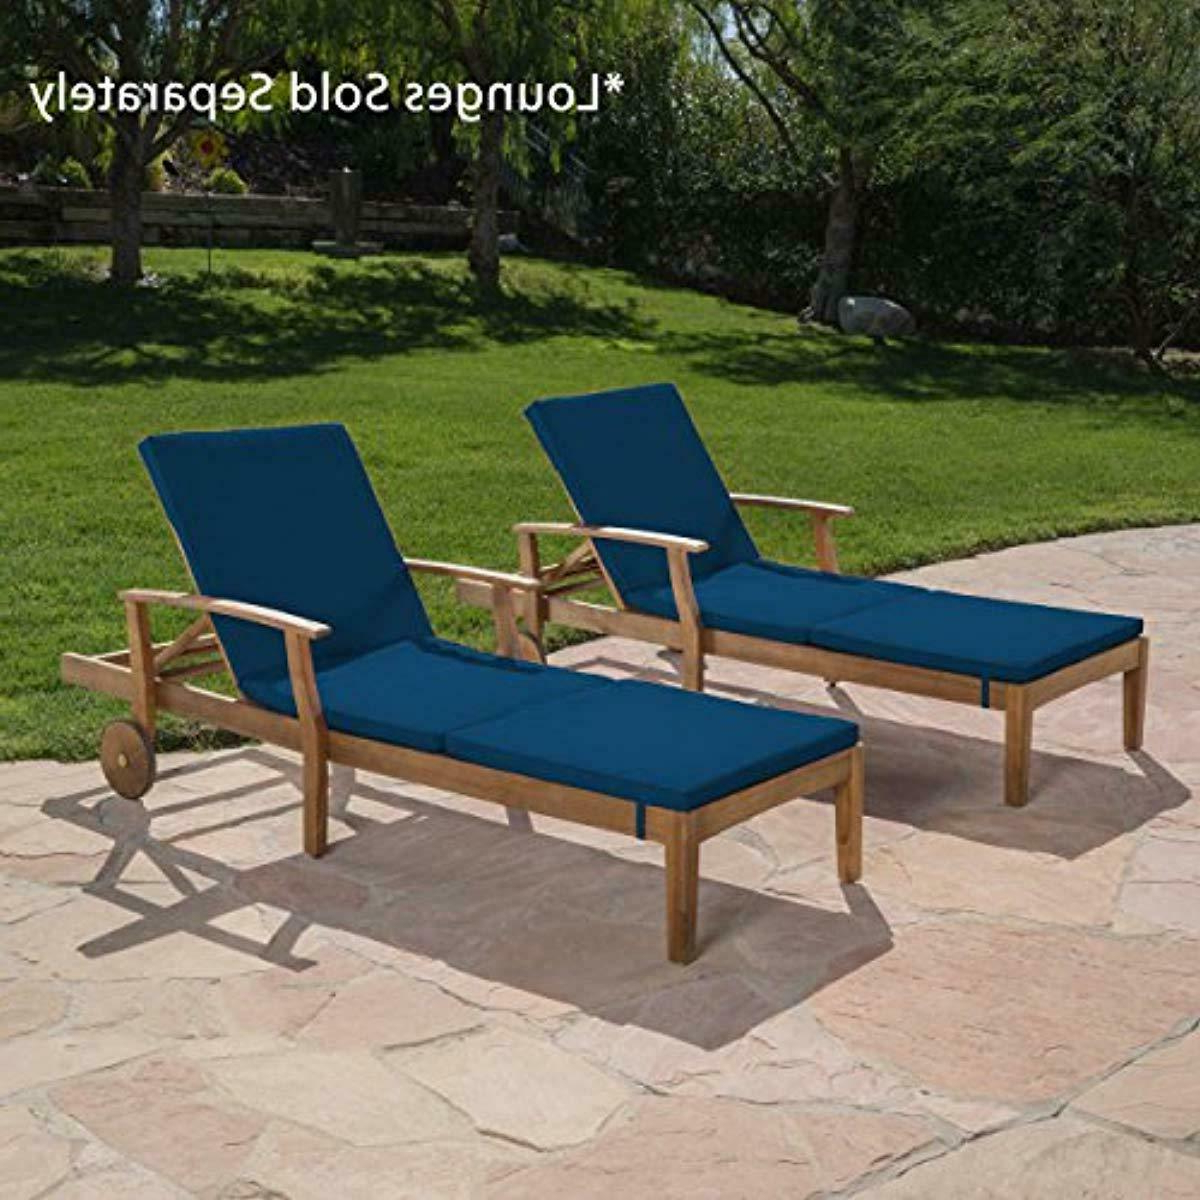 Salton Outdoor Aluminum Chaise Lounges Intended For Current Christopher Knight Home 303998 Jessica Outdoor Chaise Lounge Cushion (set Of 2), (View 19 of 25)